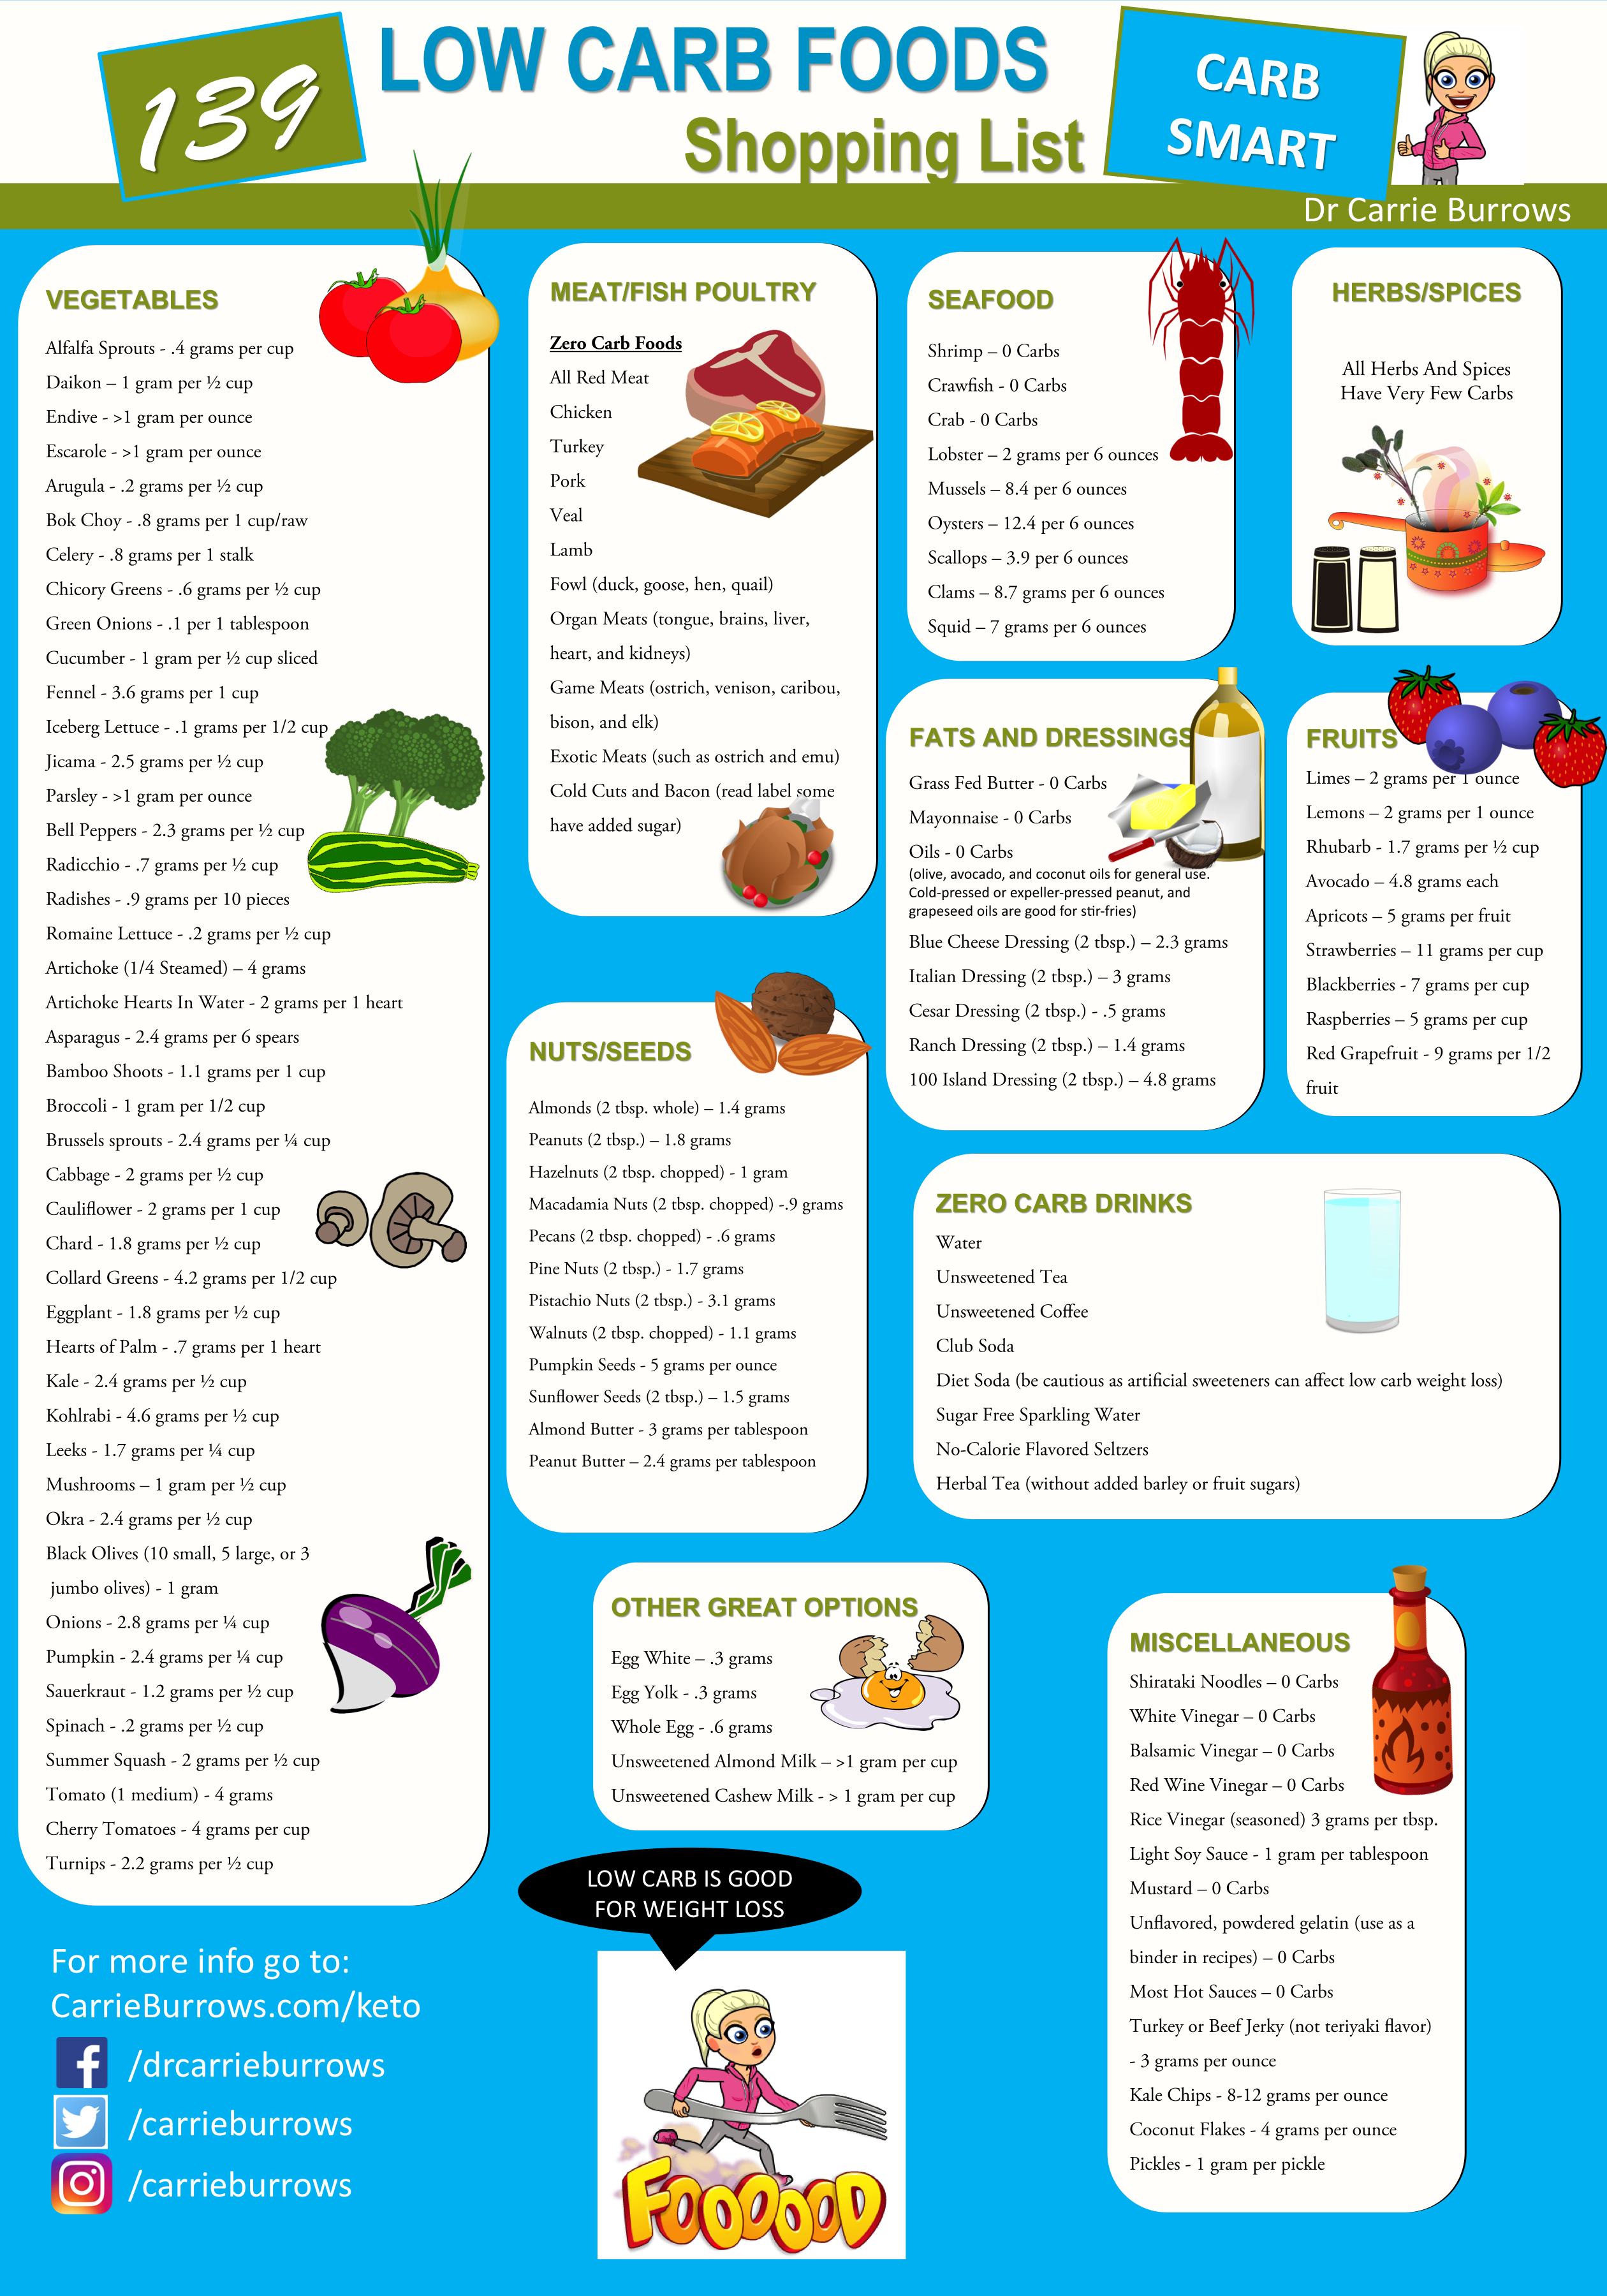 139 Low Carb Foods Shopping List Cheat Sheet for quick reference and meal planning ...